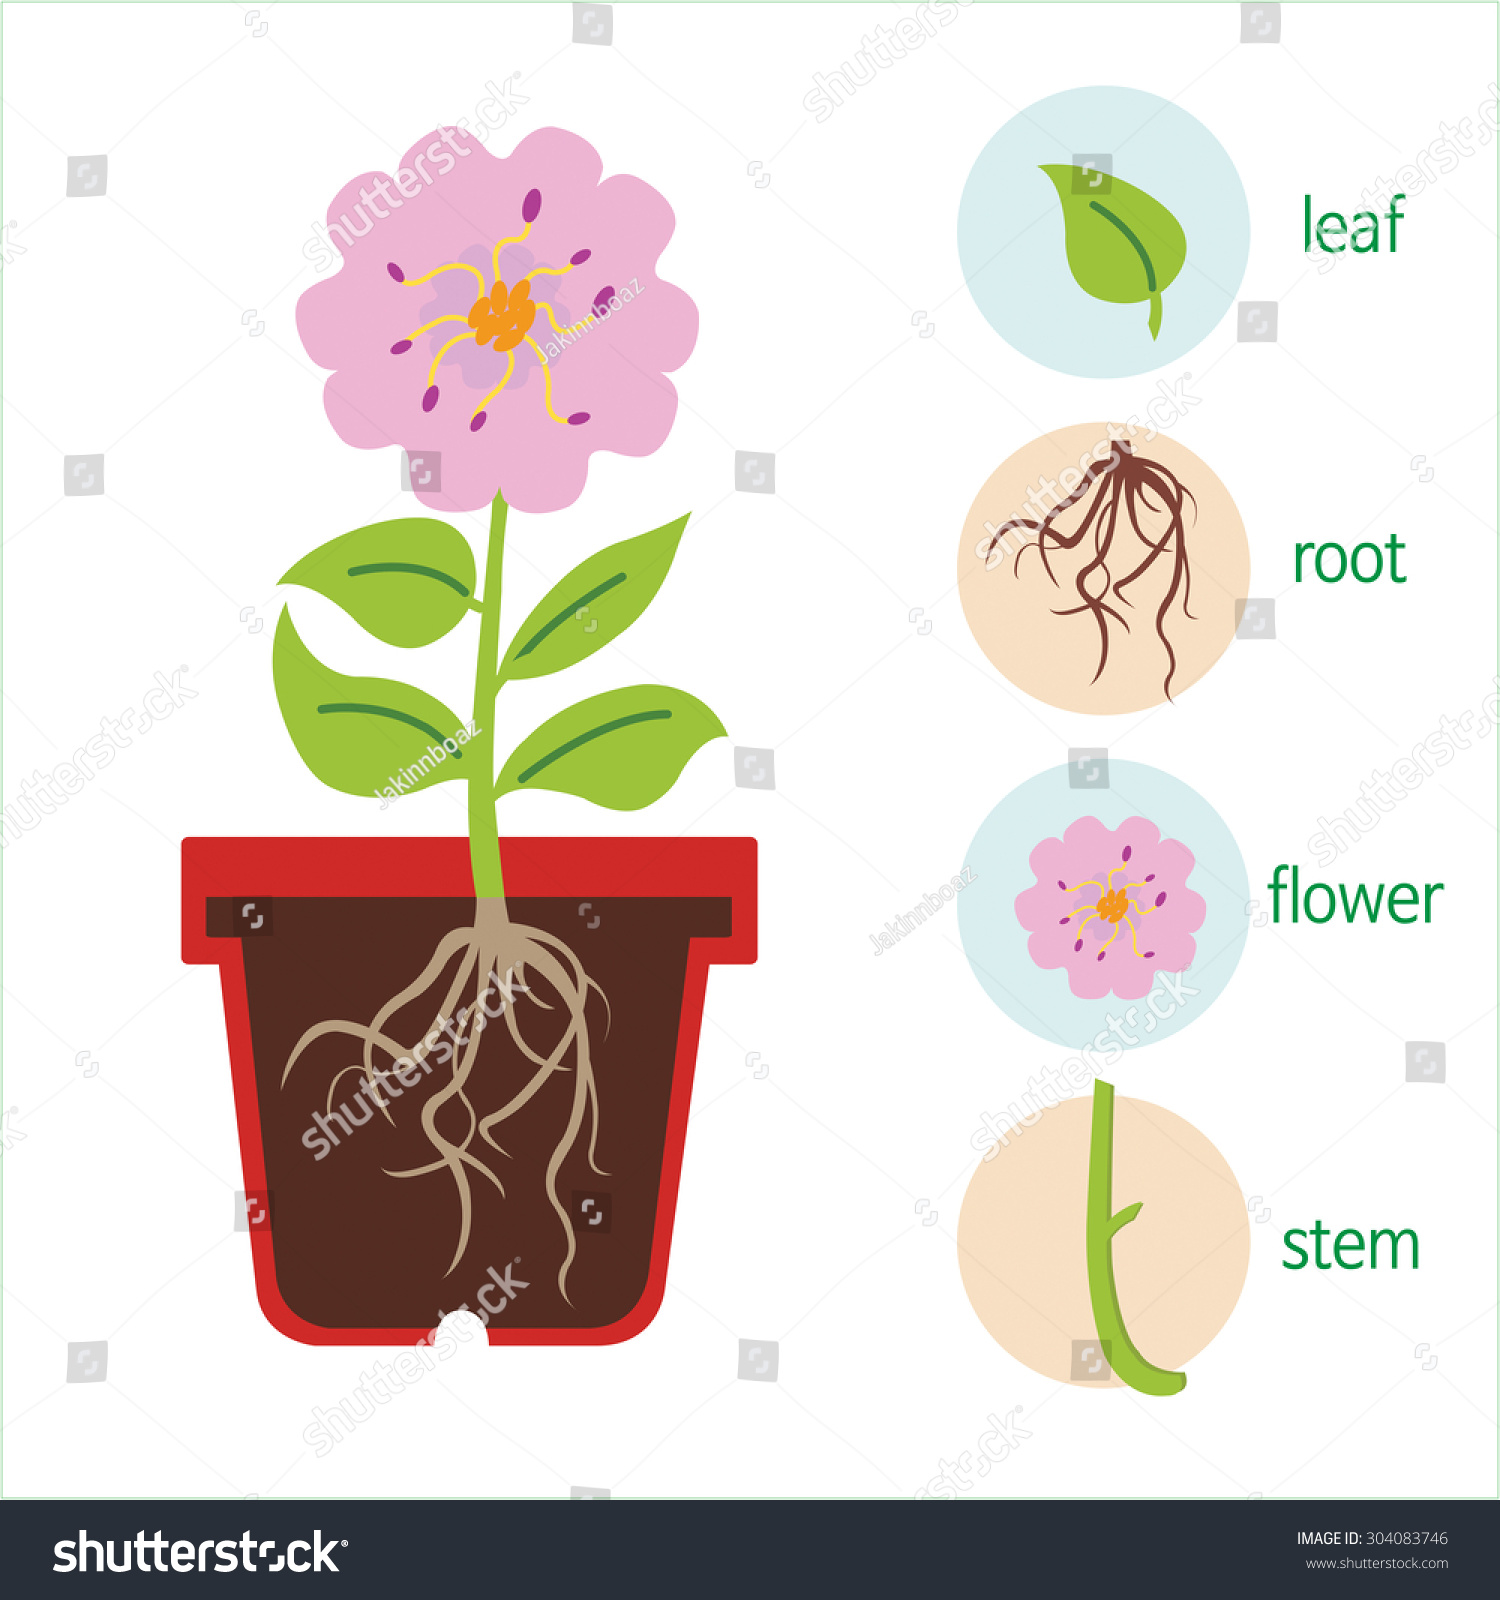 A Diagram Of A Plant  A Flower Consists Of A Stem  Roots